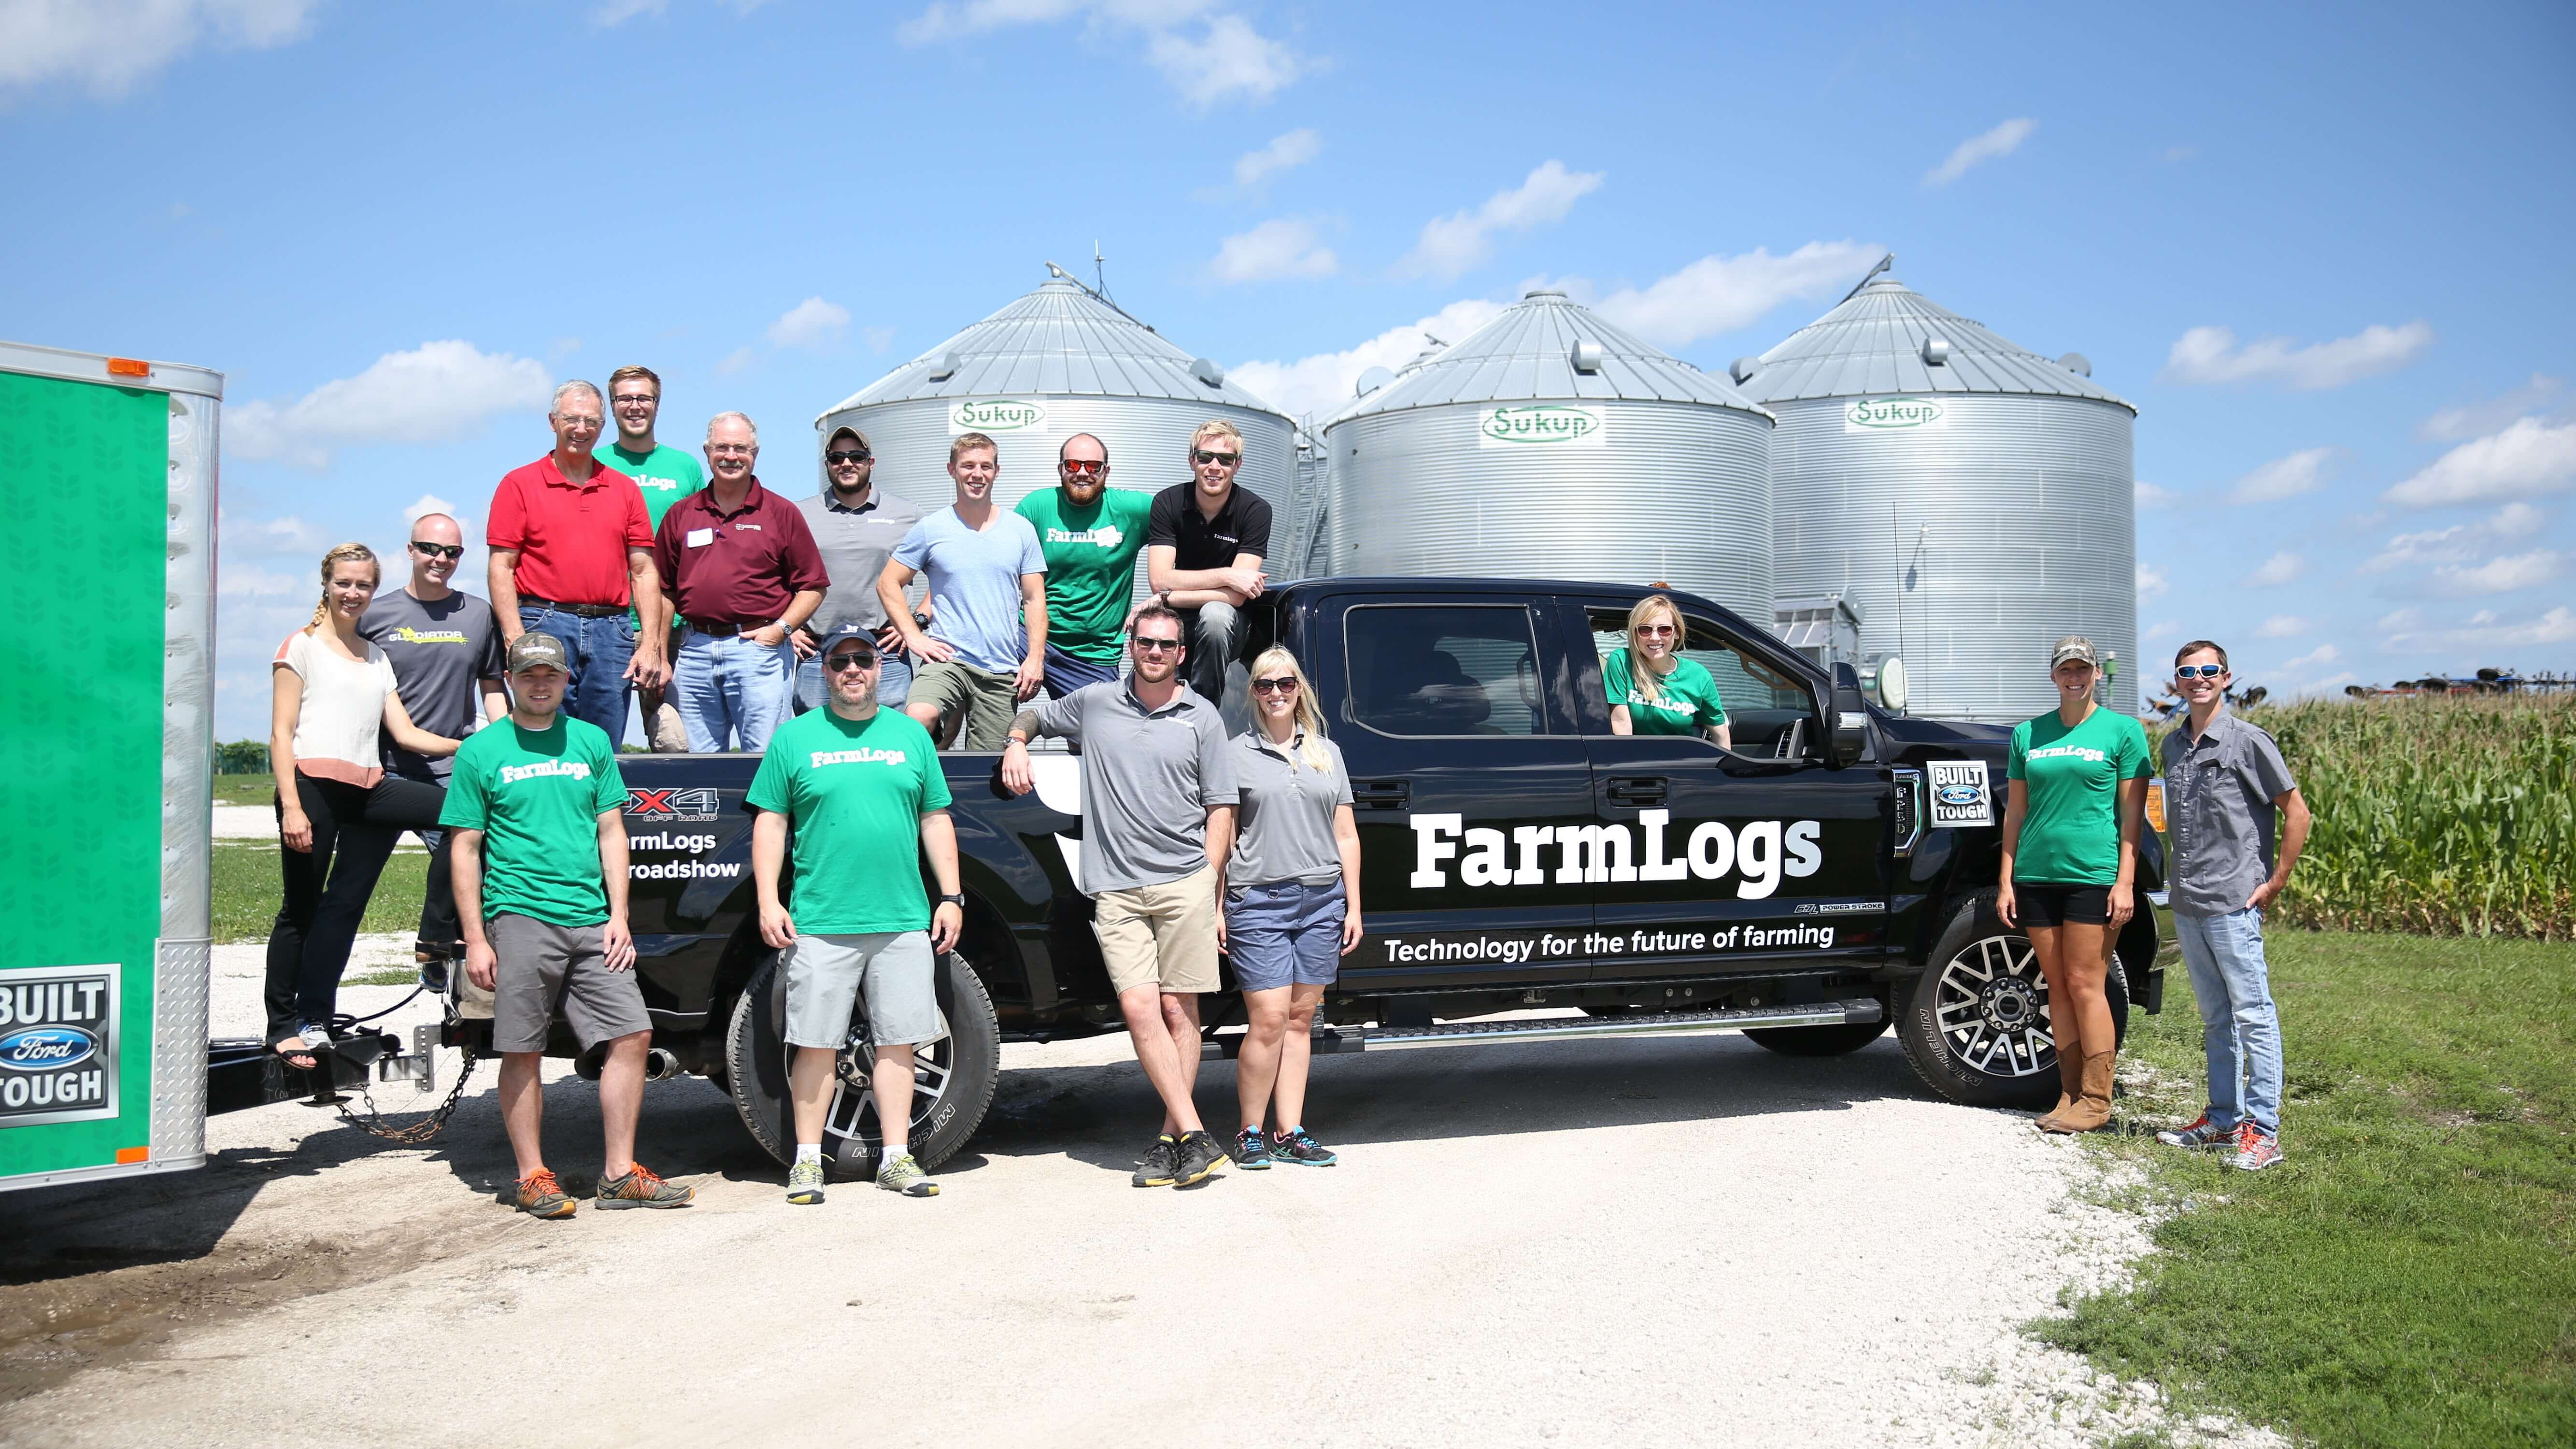 The FarmLogs team in Iowa